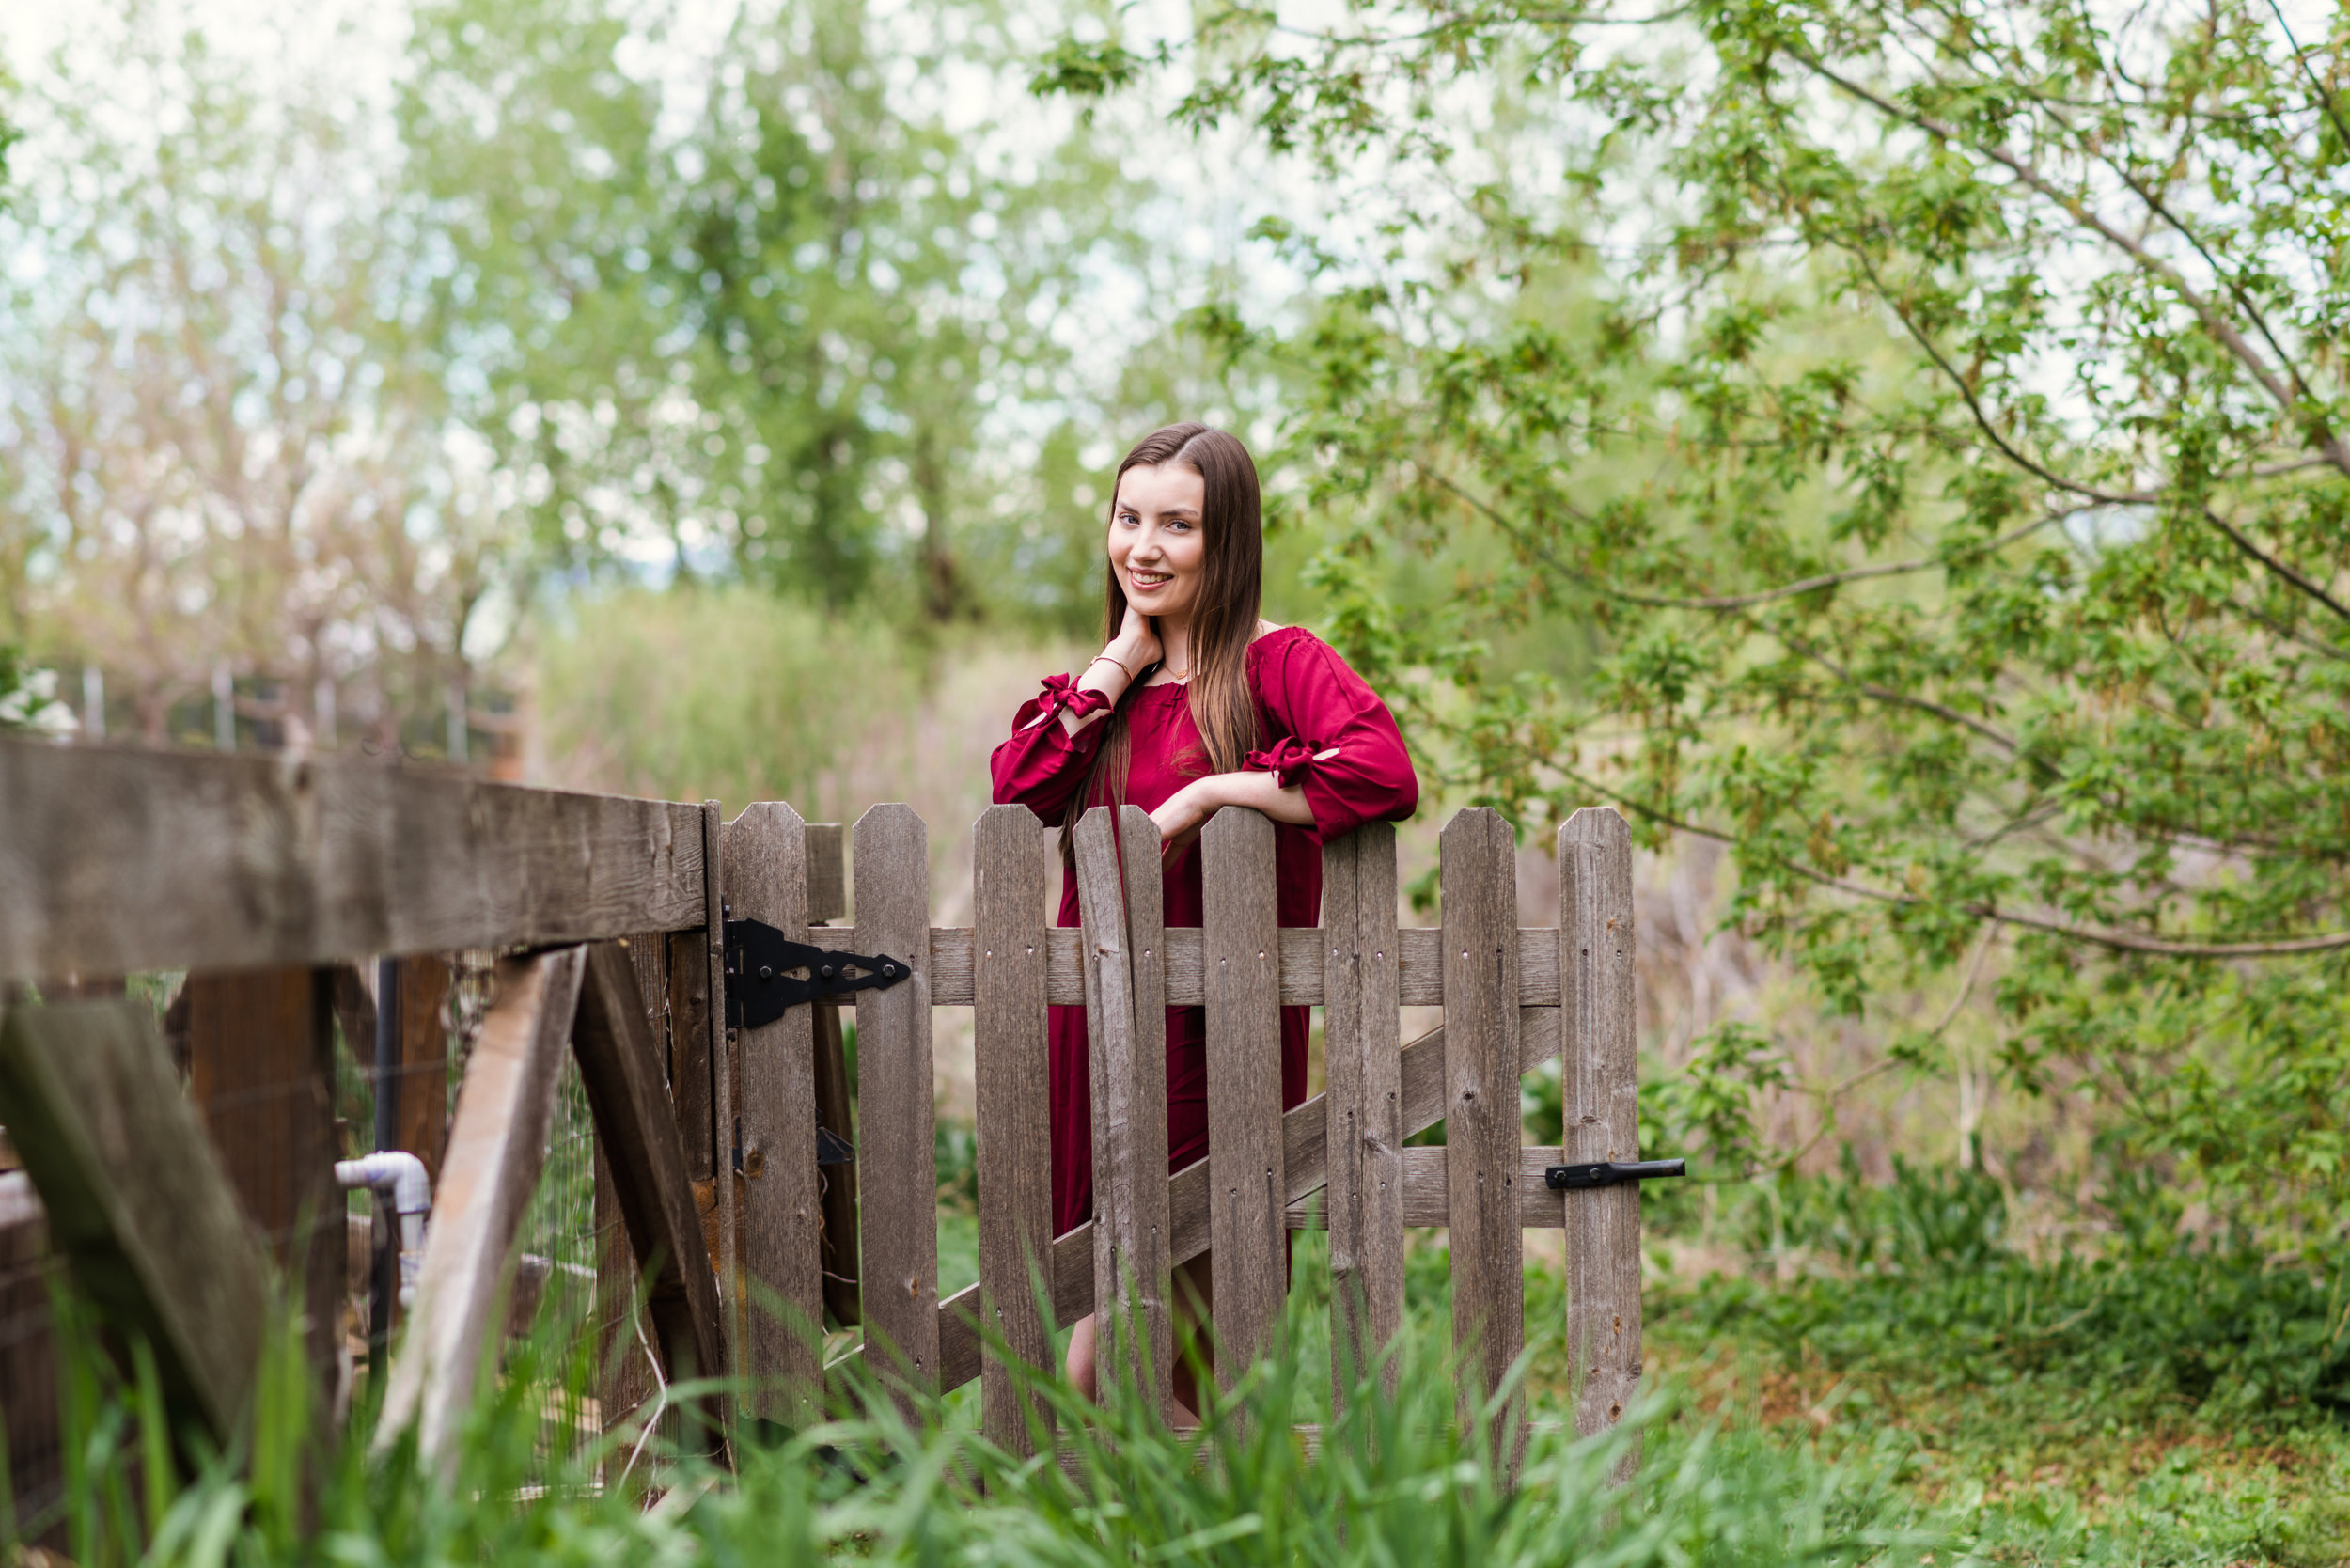 denver-senior-portrait-photographer